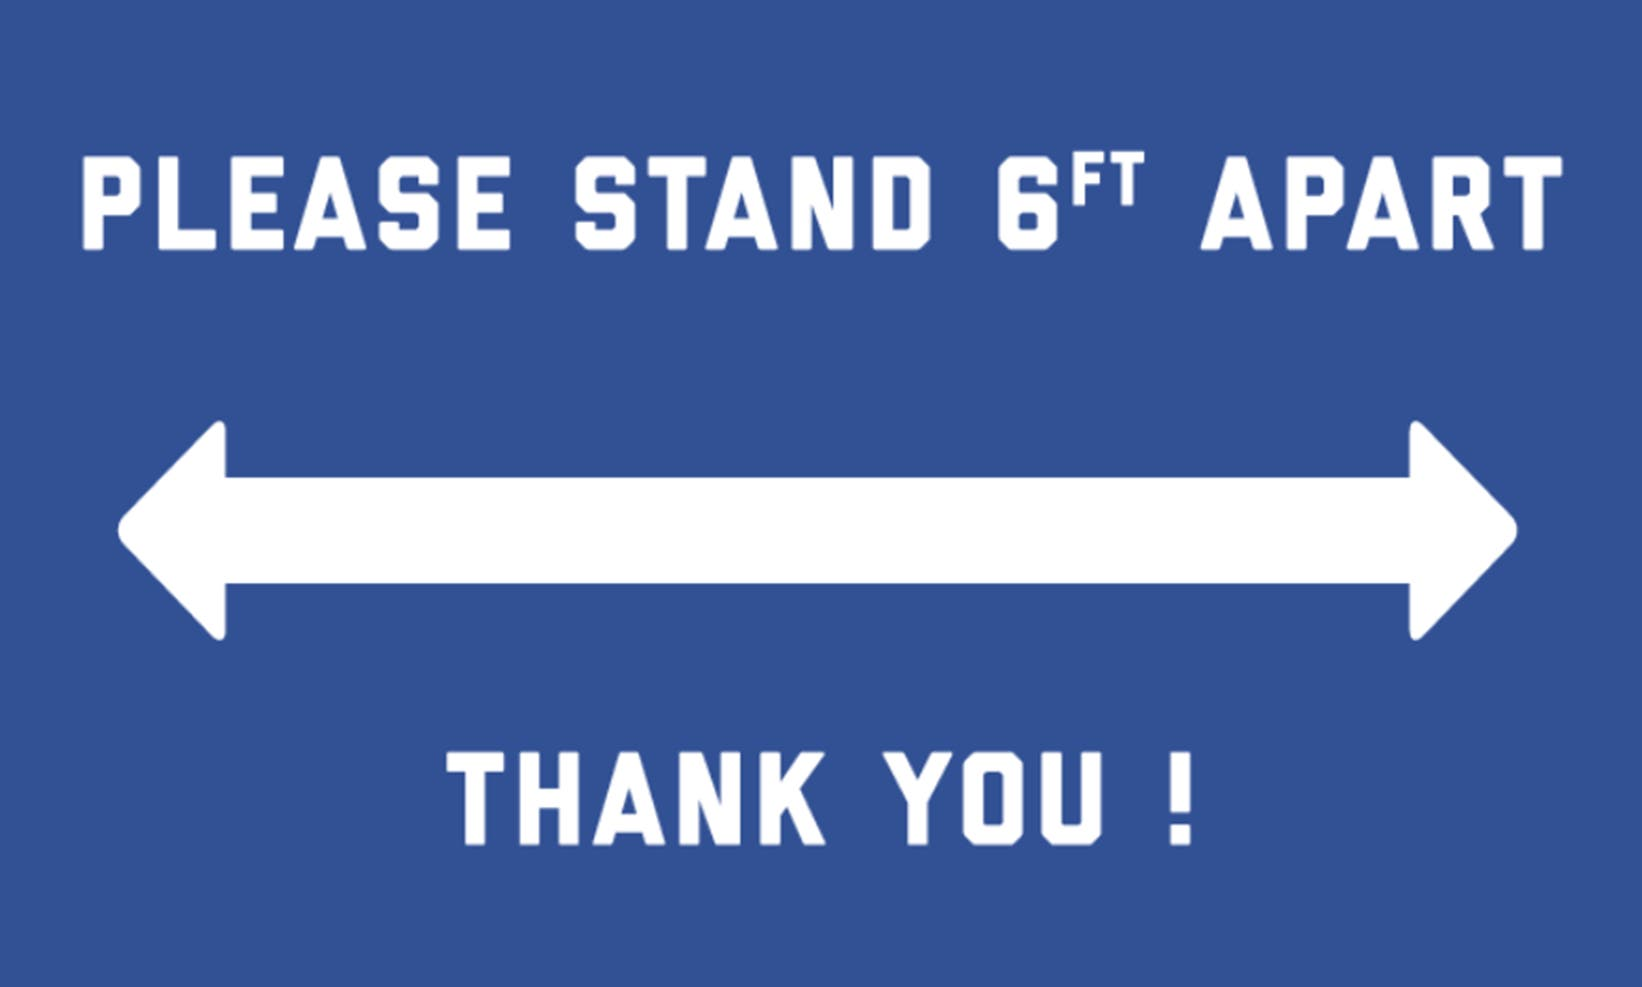 """Please Stand 6 Feet Apart, Social Distancing Metal Sign, Blue with White Print - 8""""H x 12""""W"""